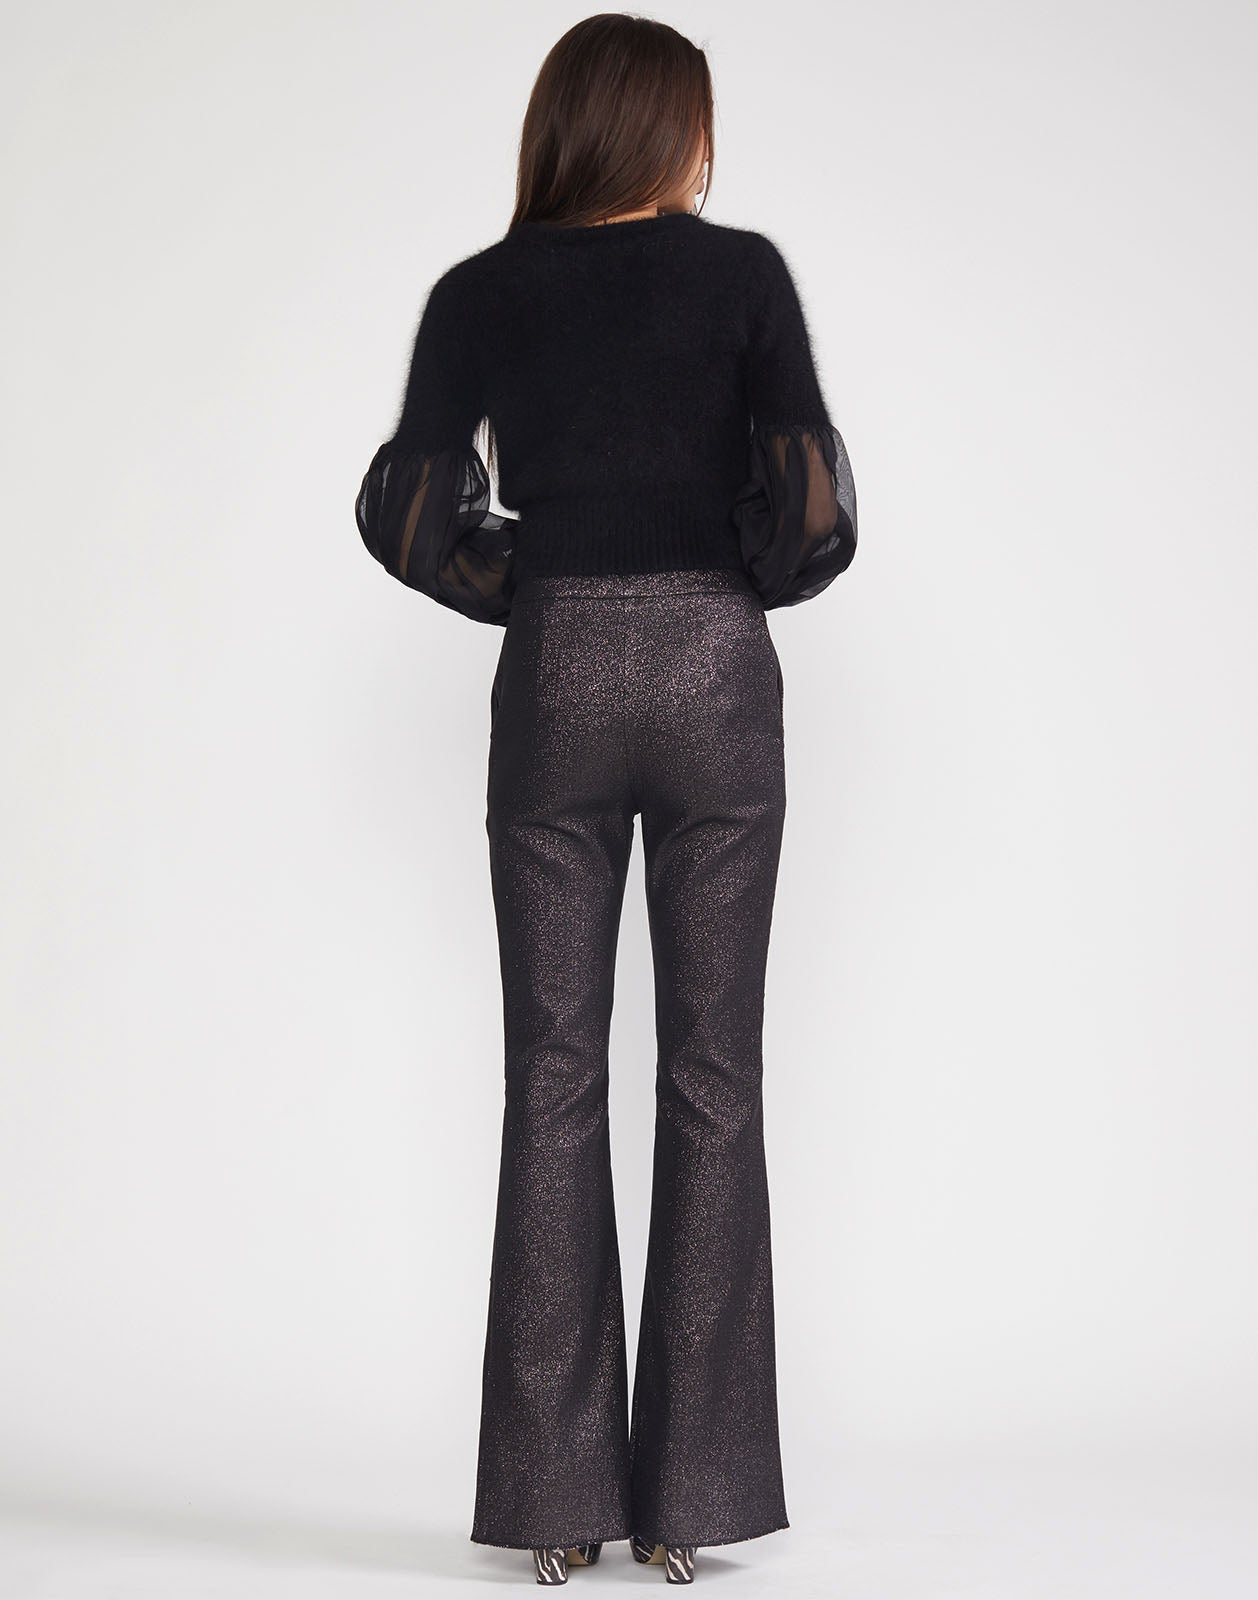 Back view of flare pant with shimmer